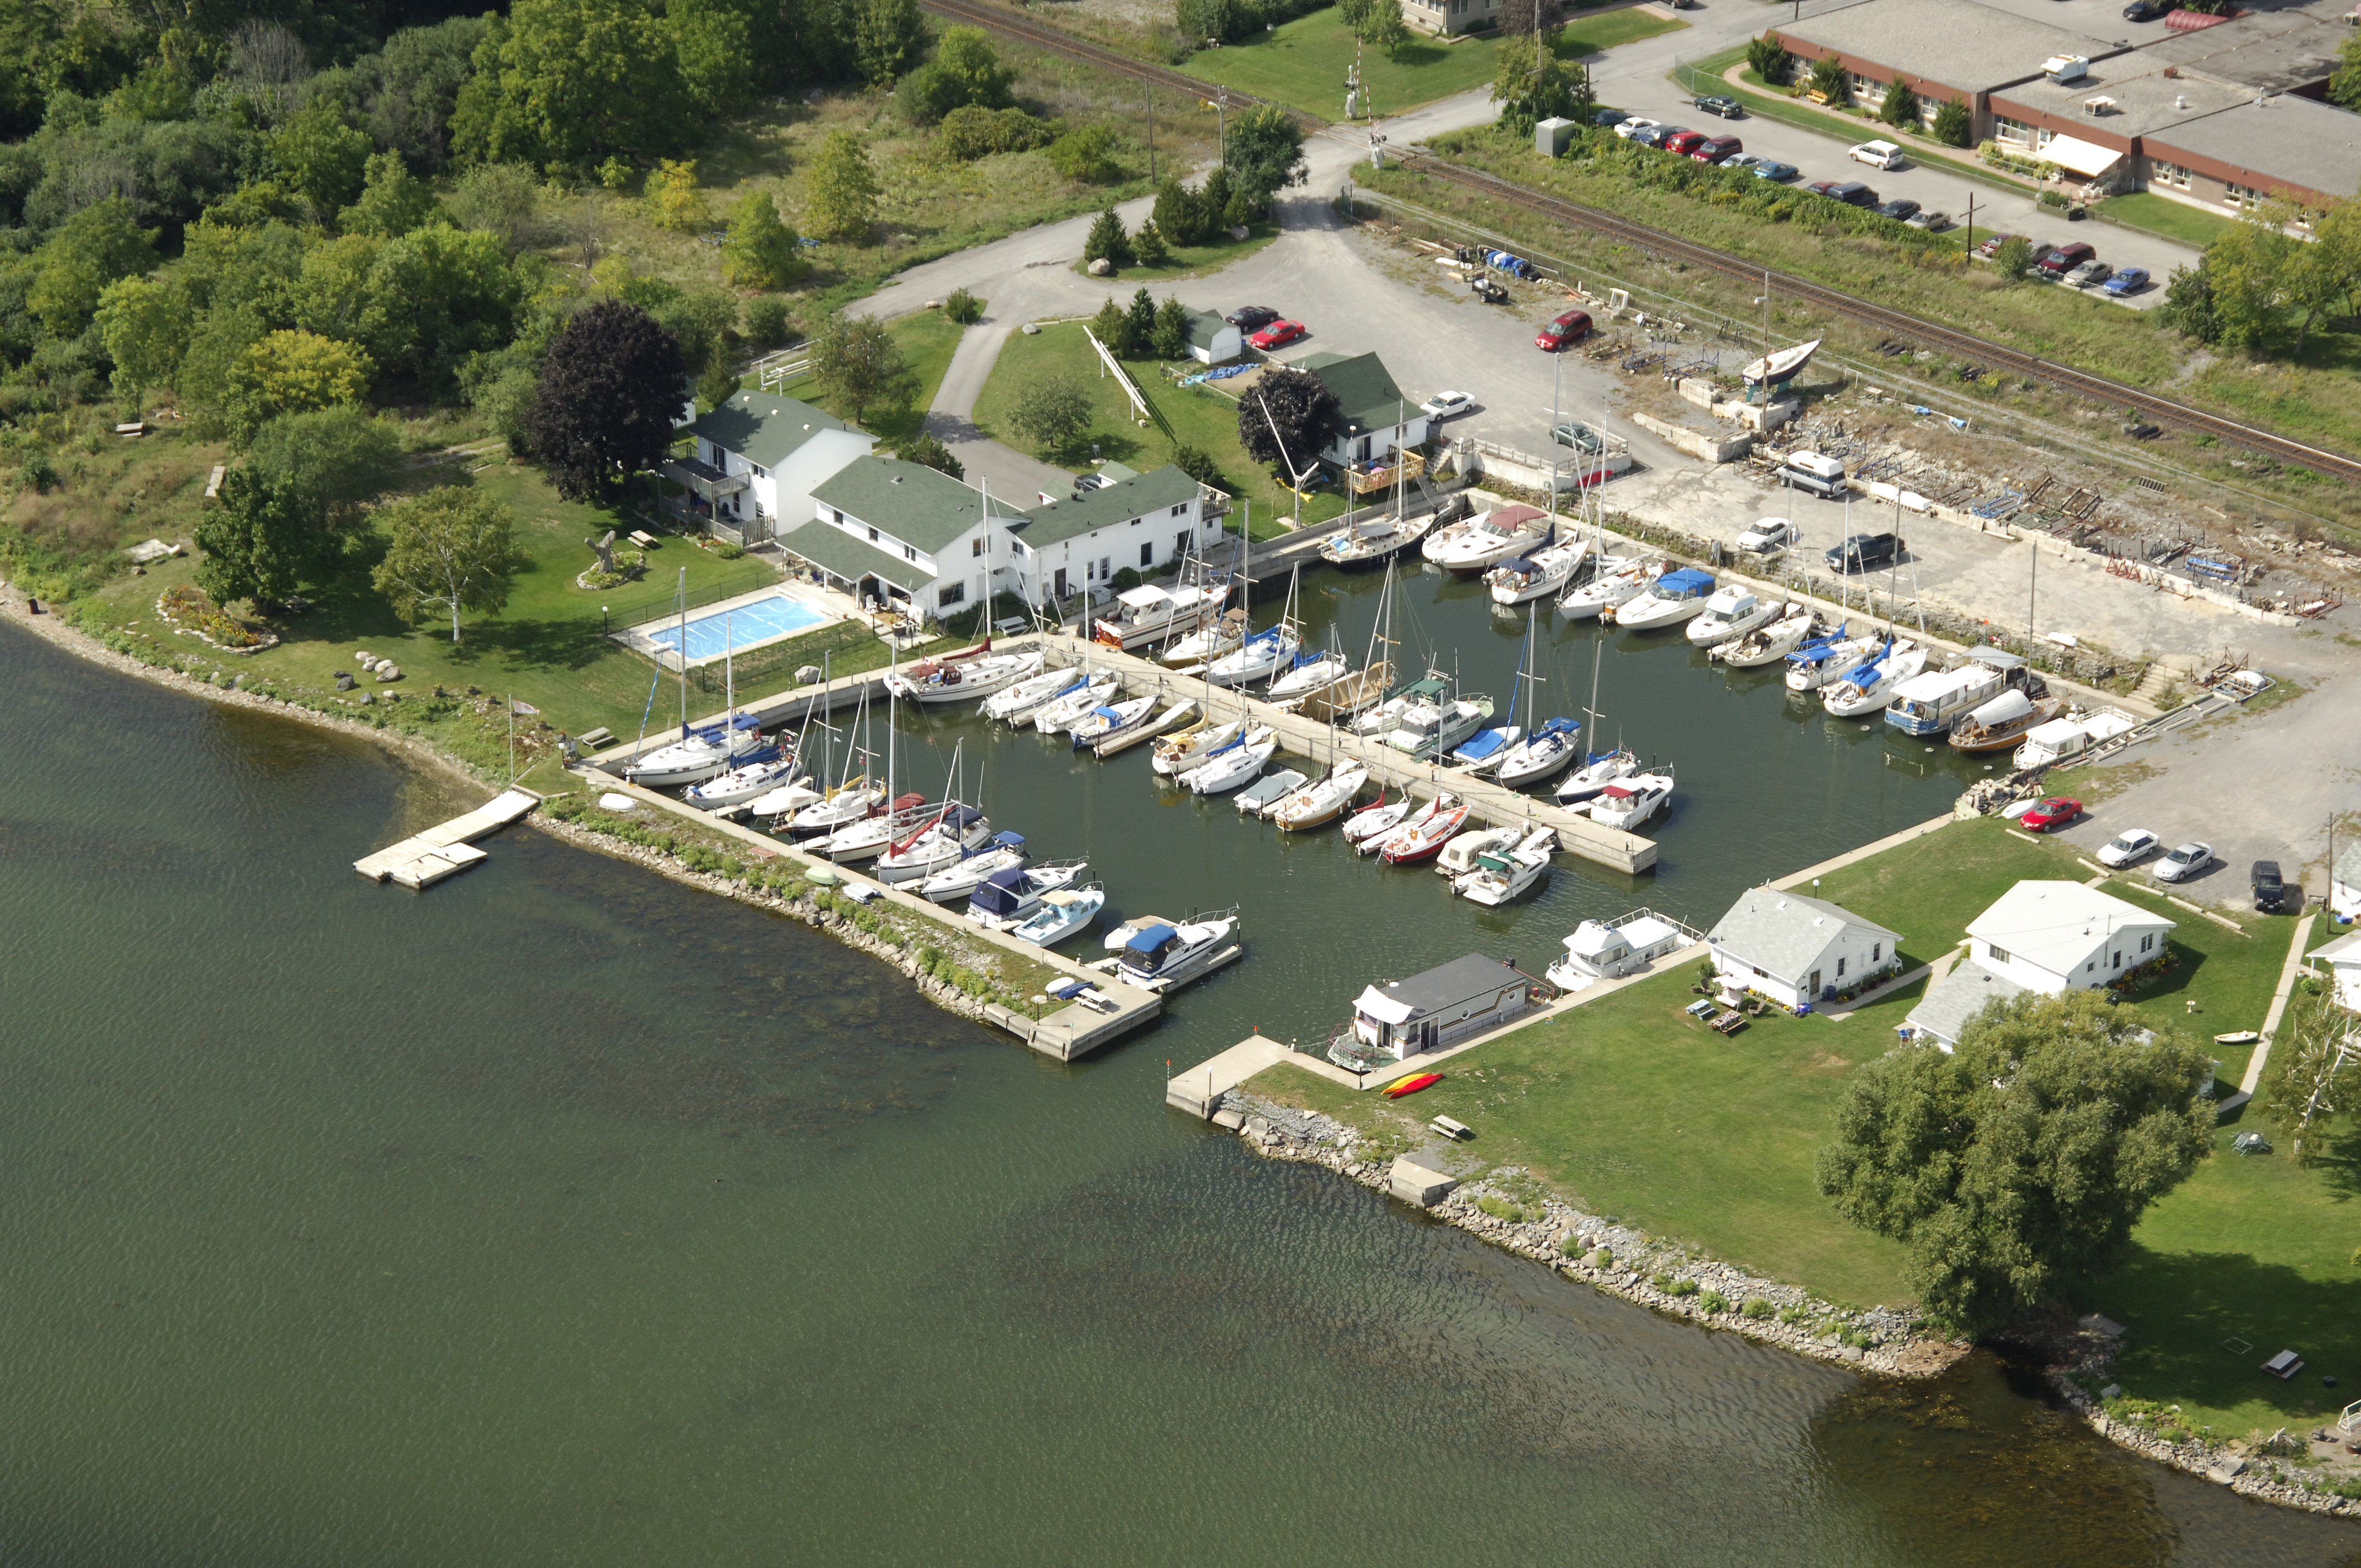 Stillwater Basin In Belleville ON Canada Marina